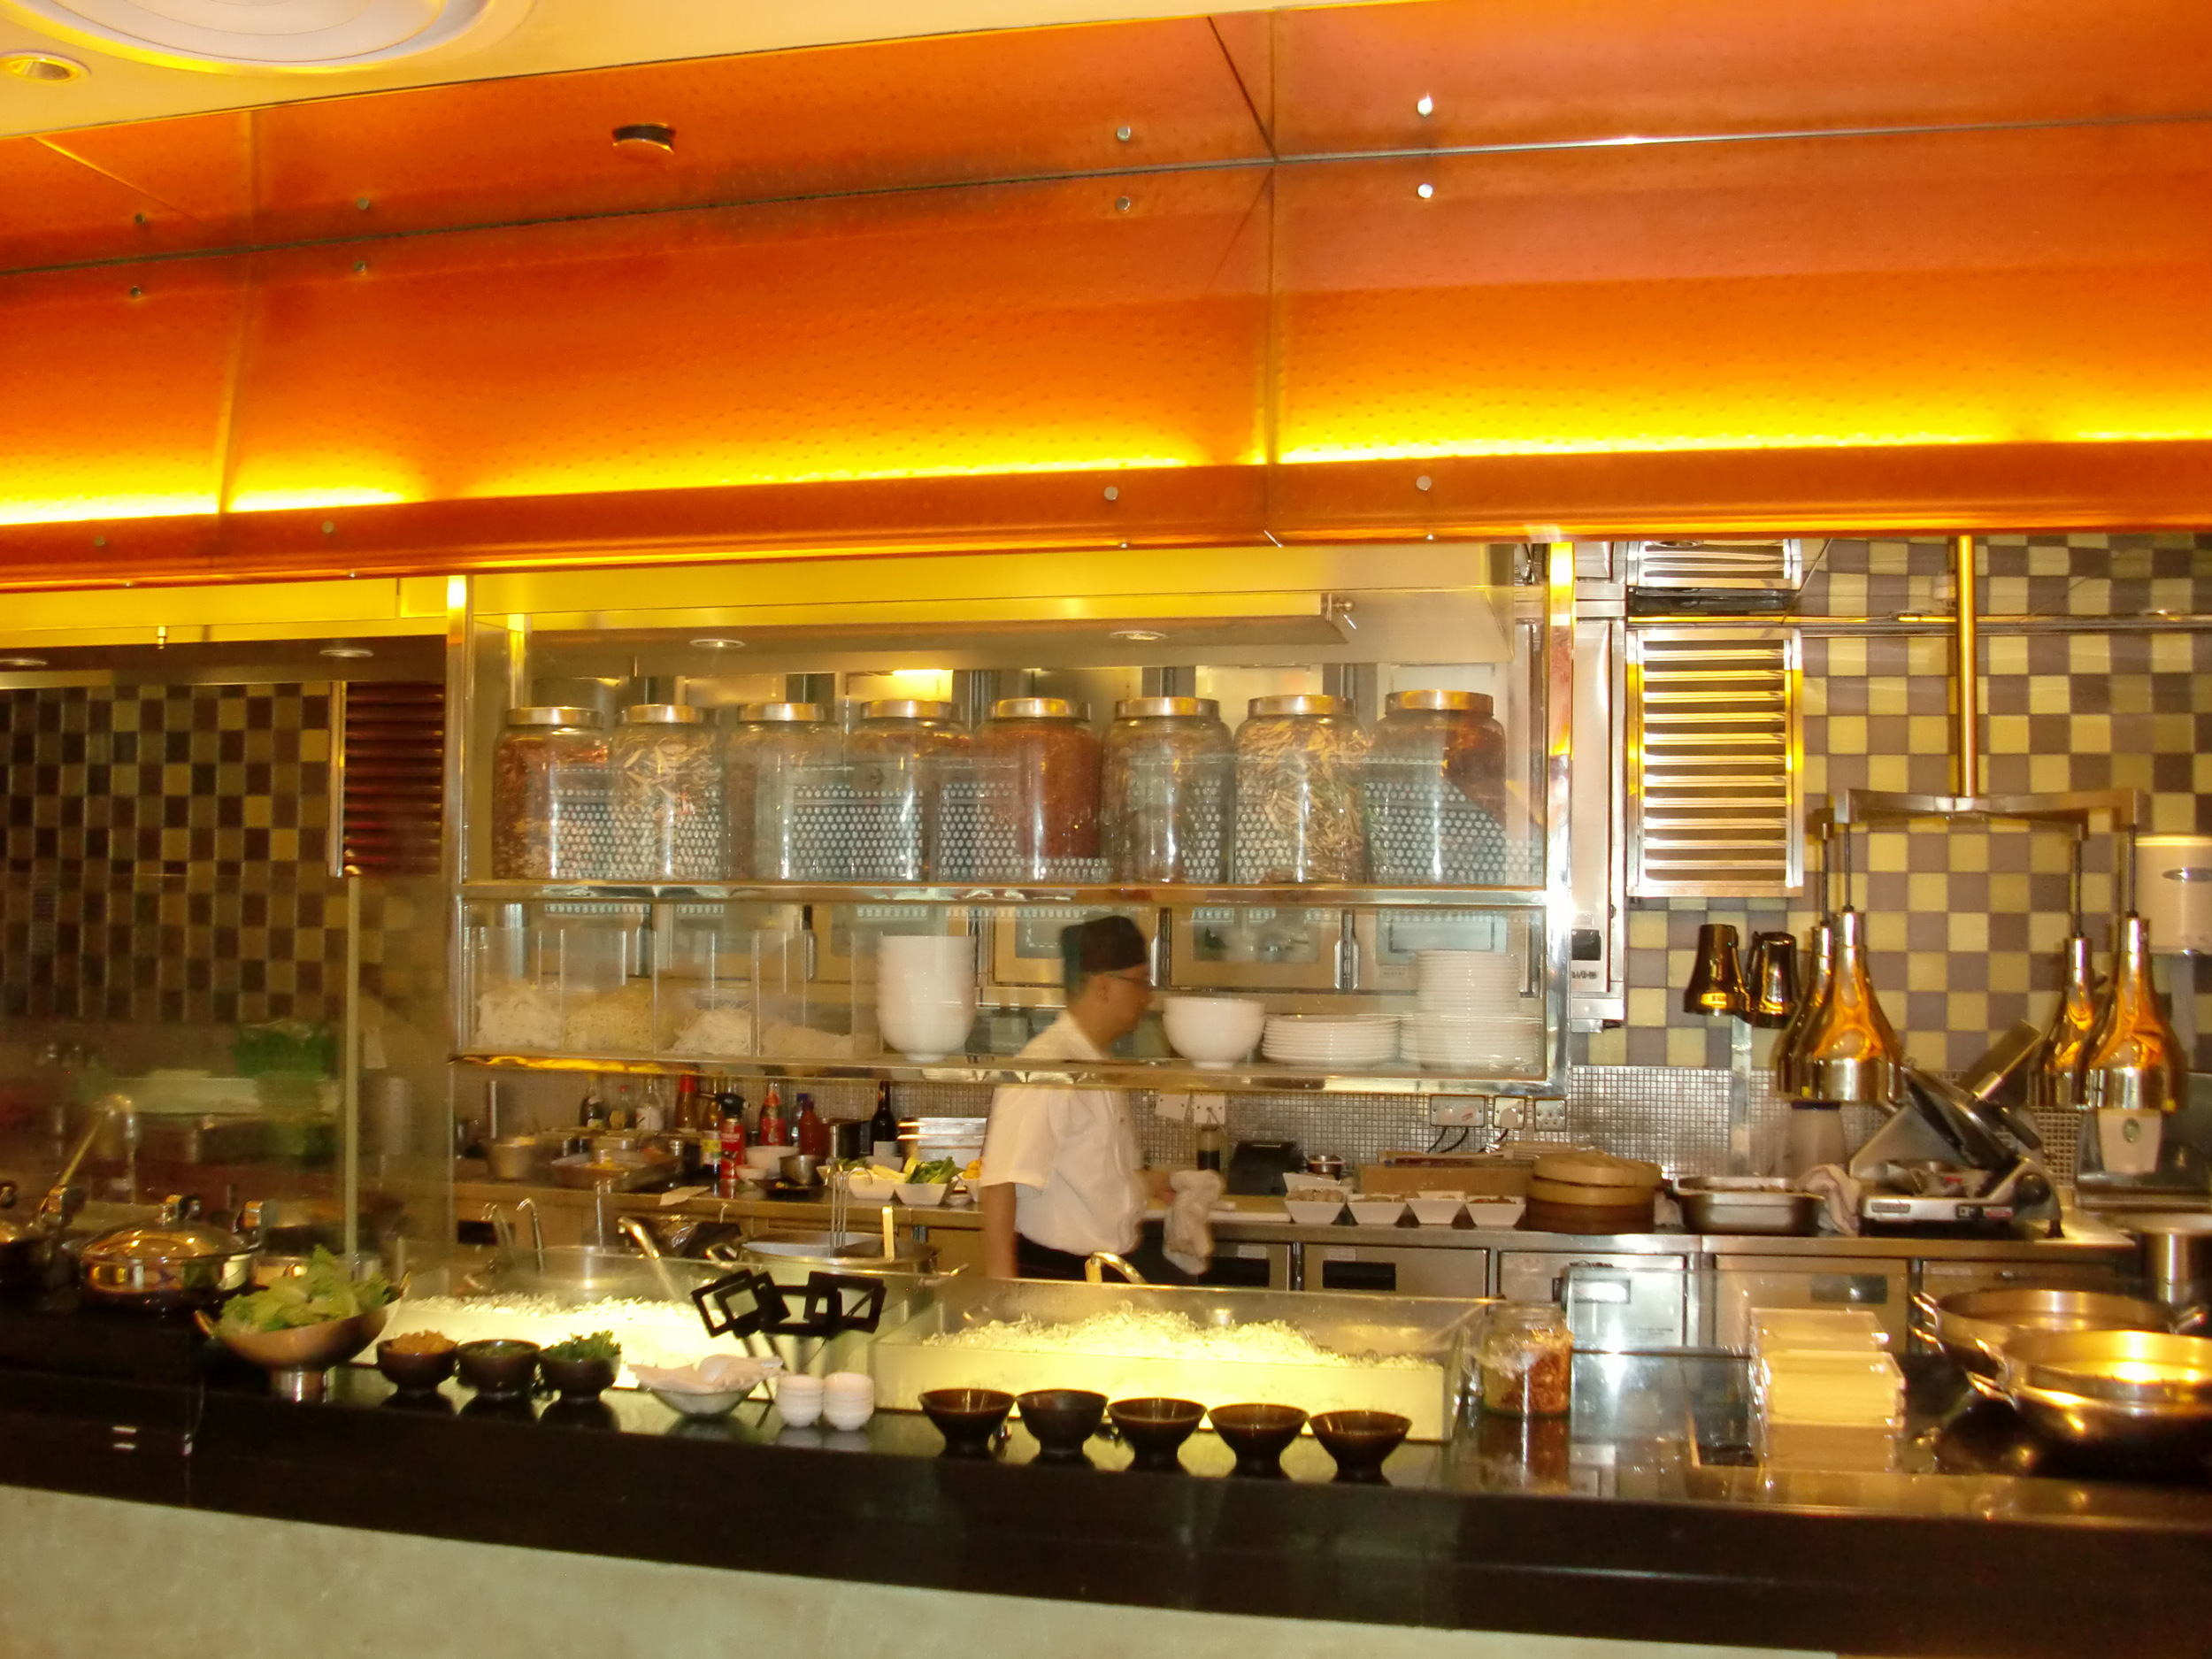 Rotana kitchen servery.jpg